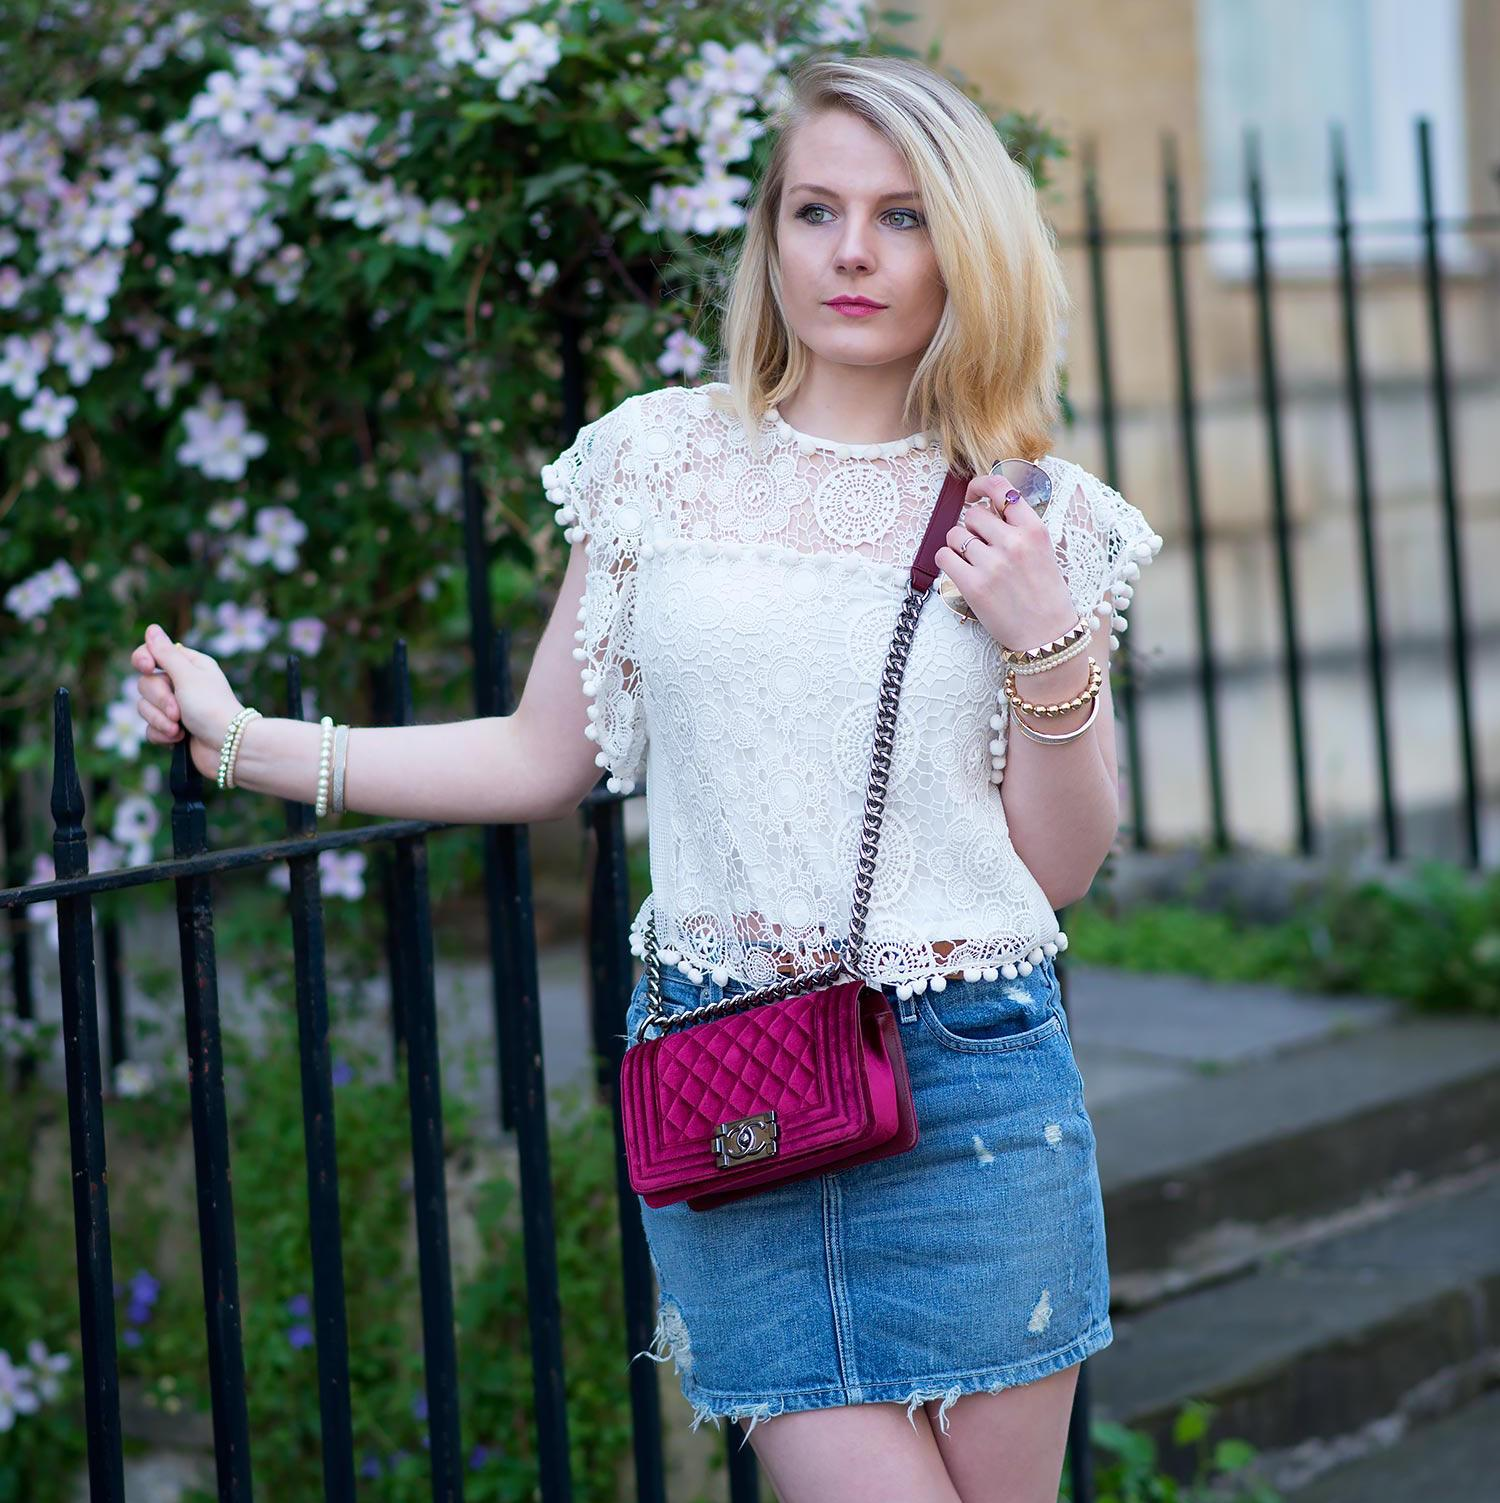 chanel velvet boy bag with denim mini skirt copy